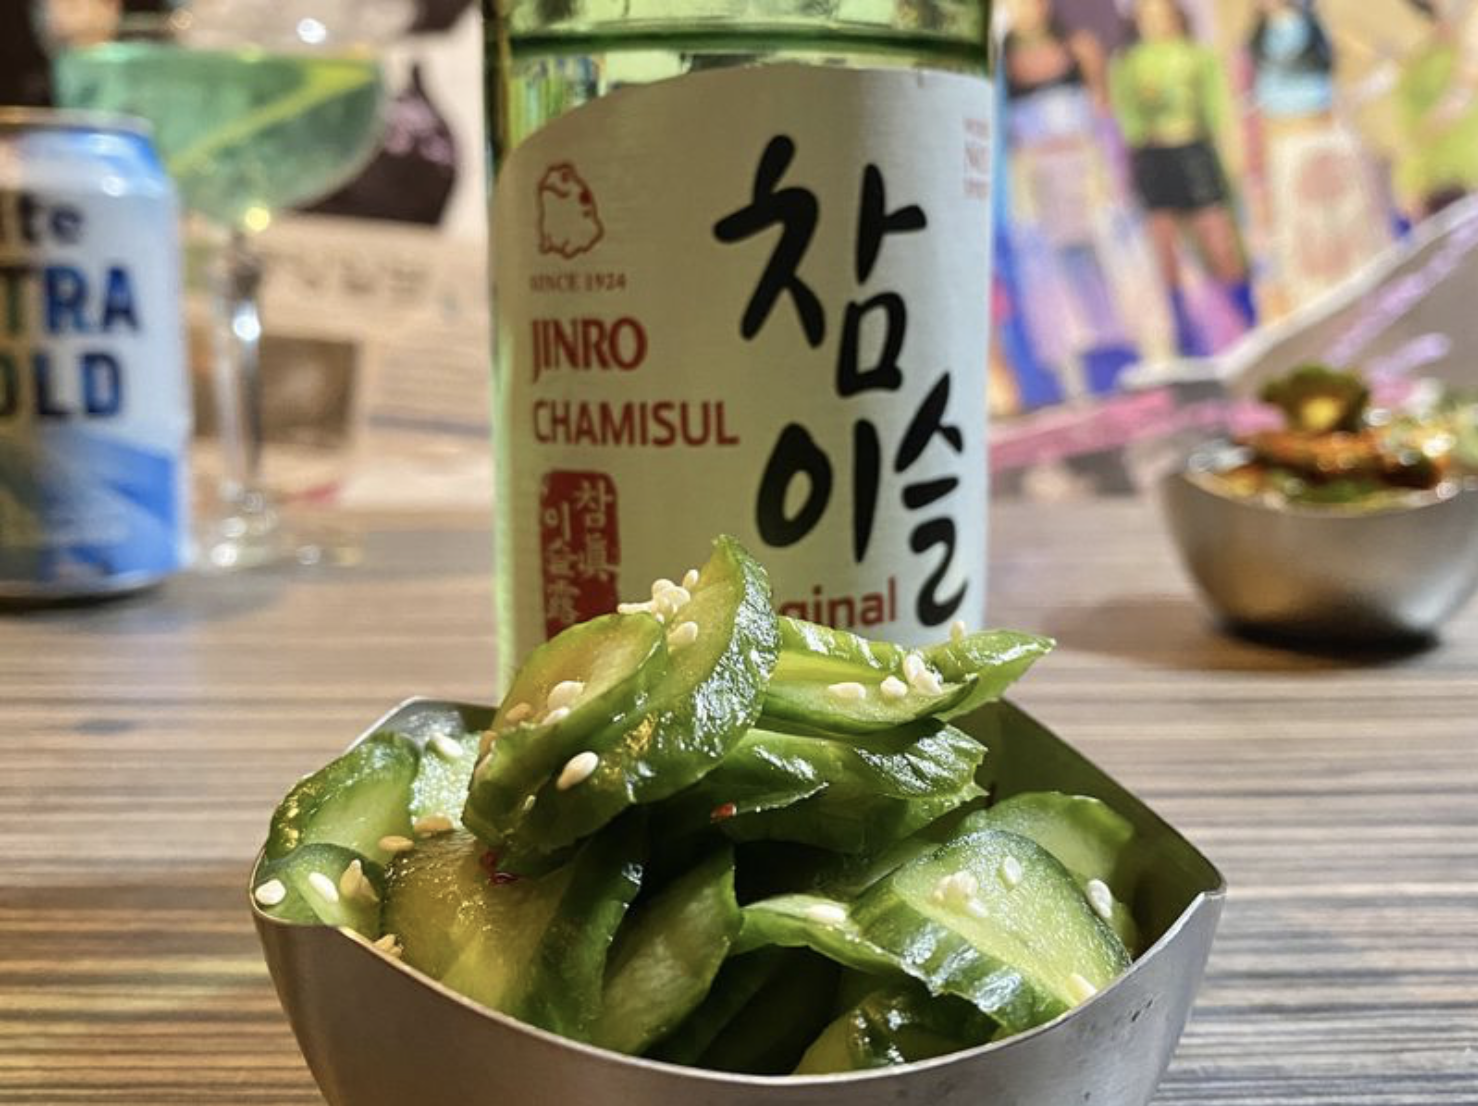 A bottle of soju and bowl of kimchi